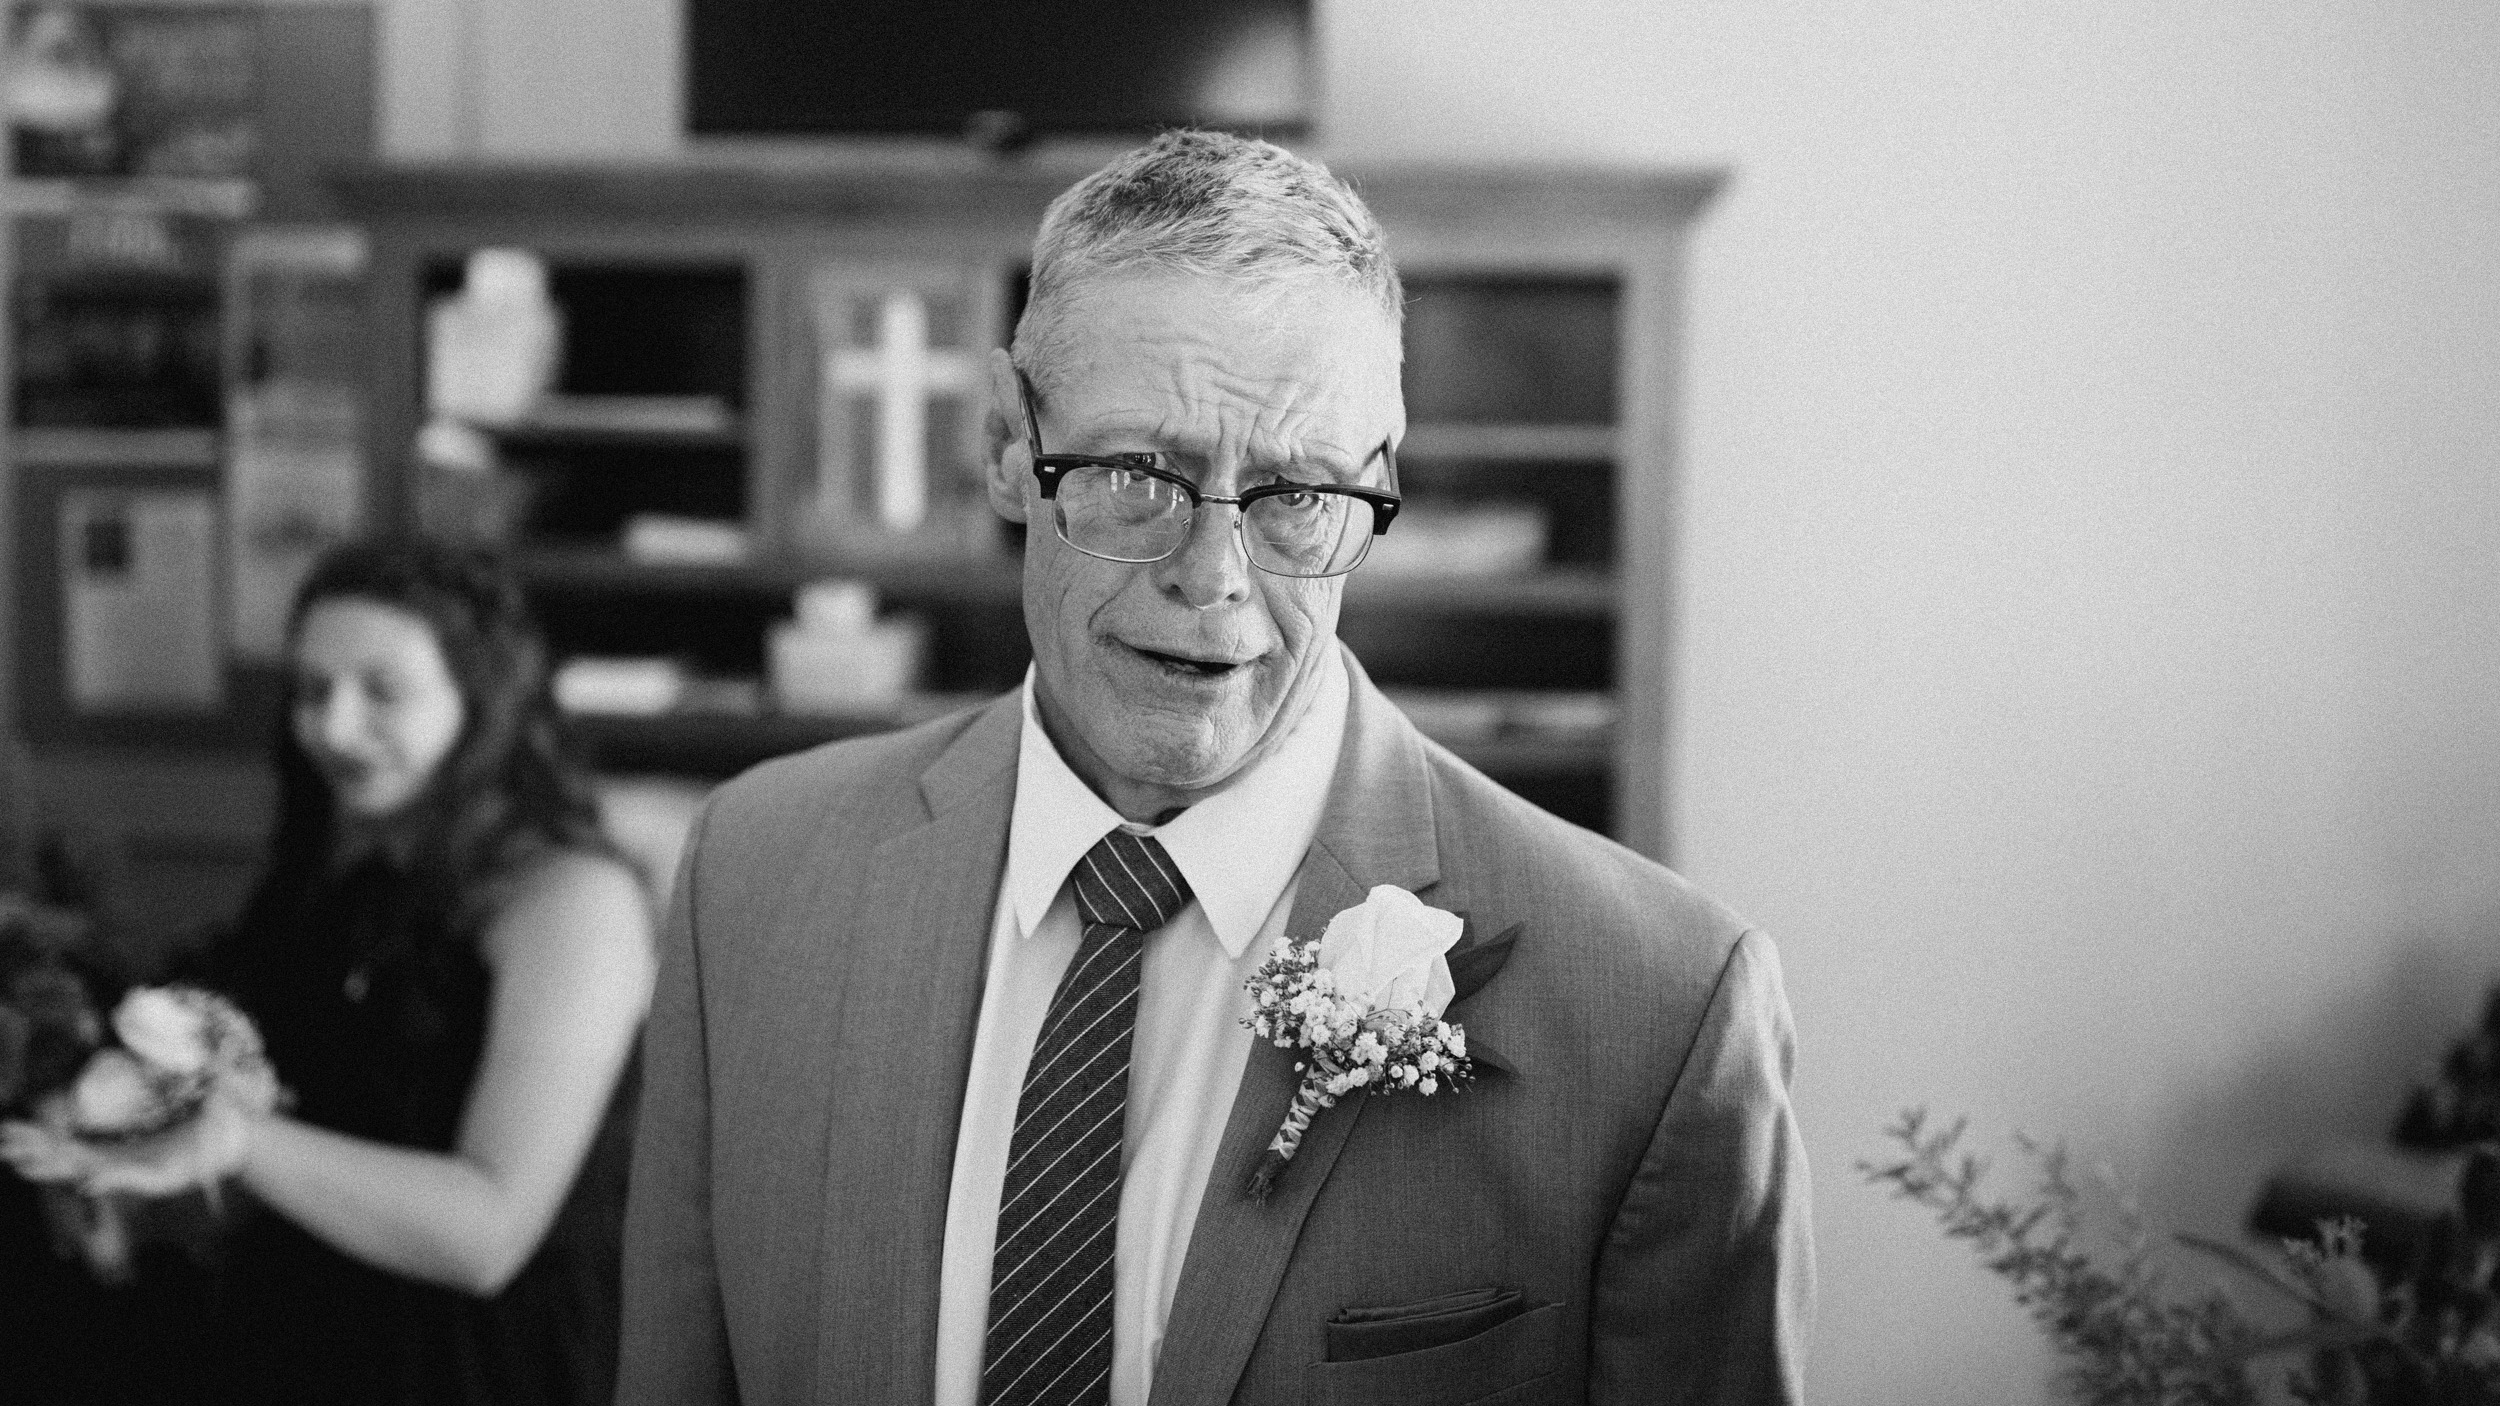 alec_vanderboom_john_micahel_lucy_kansas_city_wedding_photographer-0020.jpg